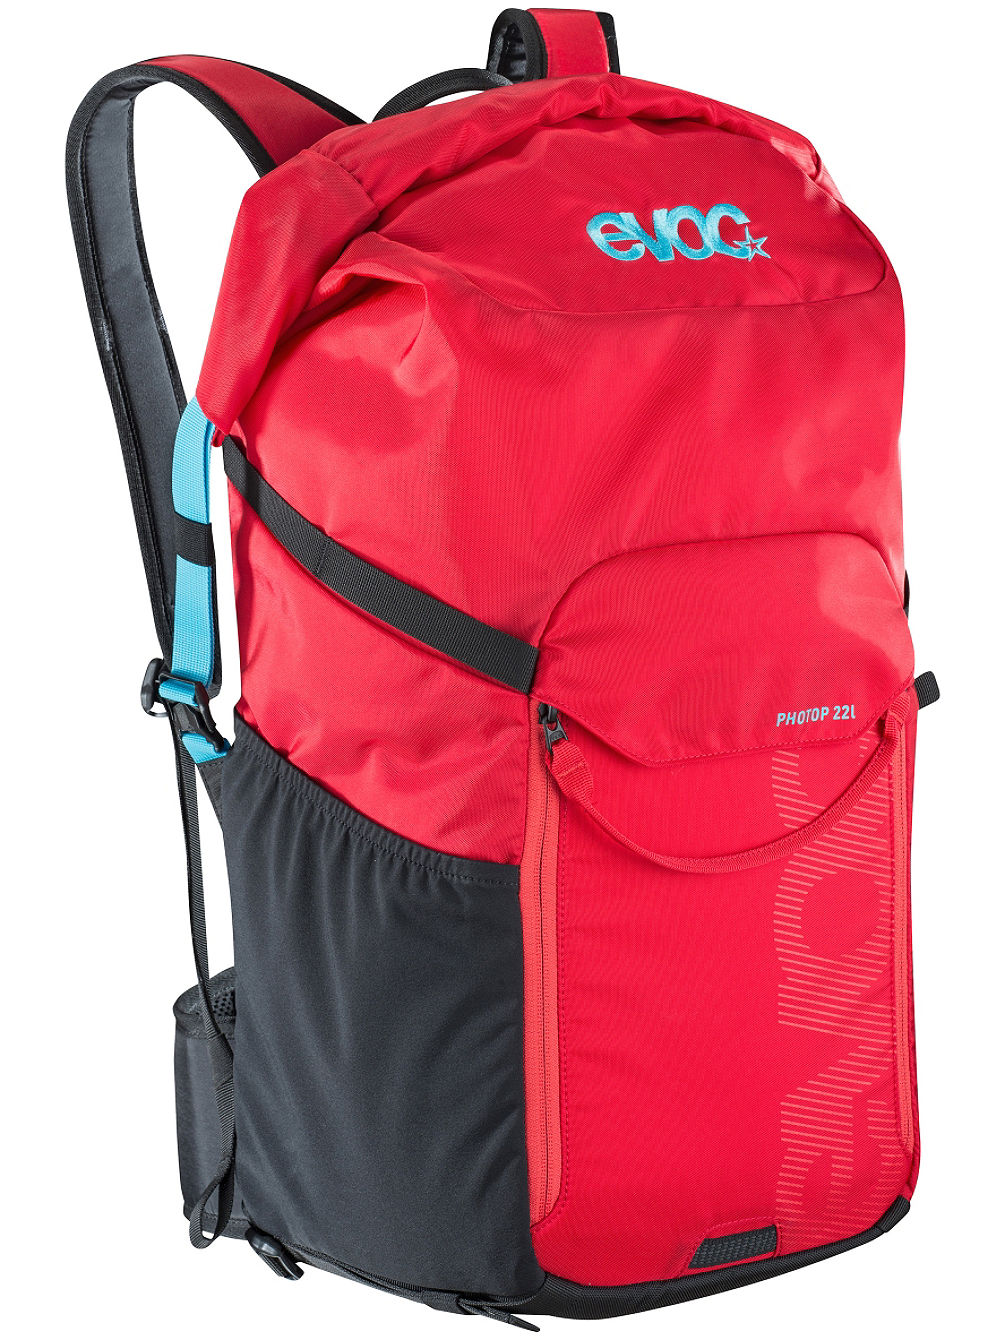 Photop 22L Backpack